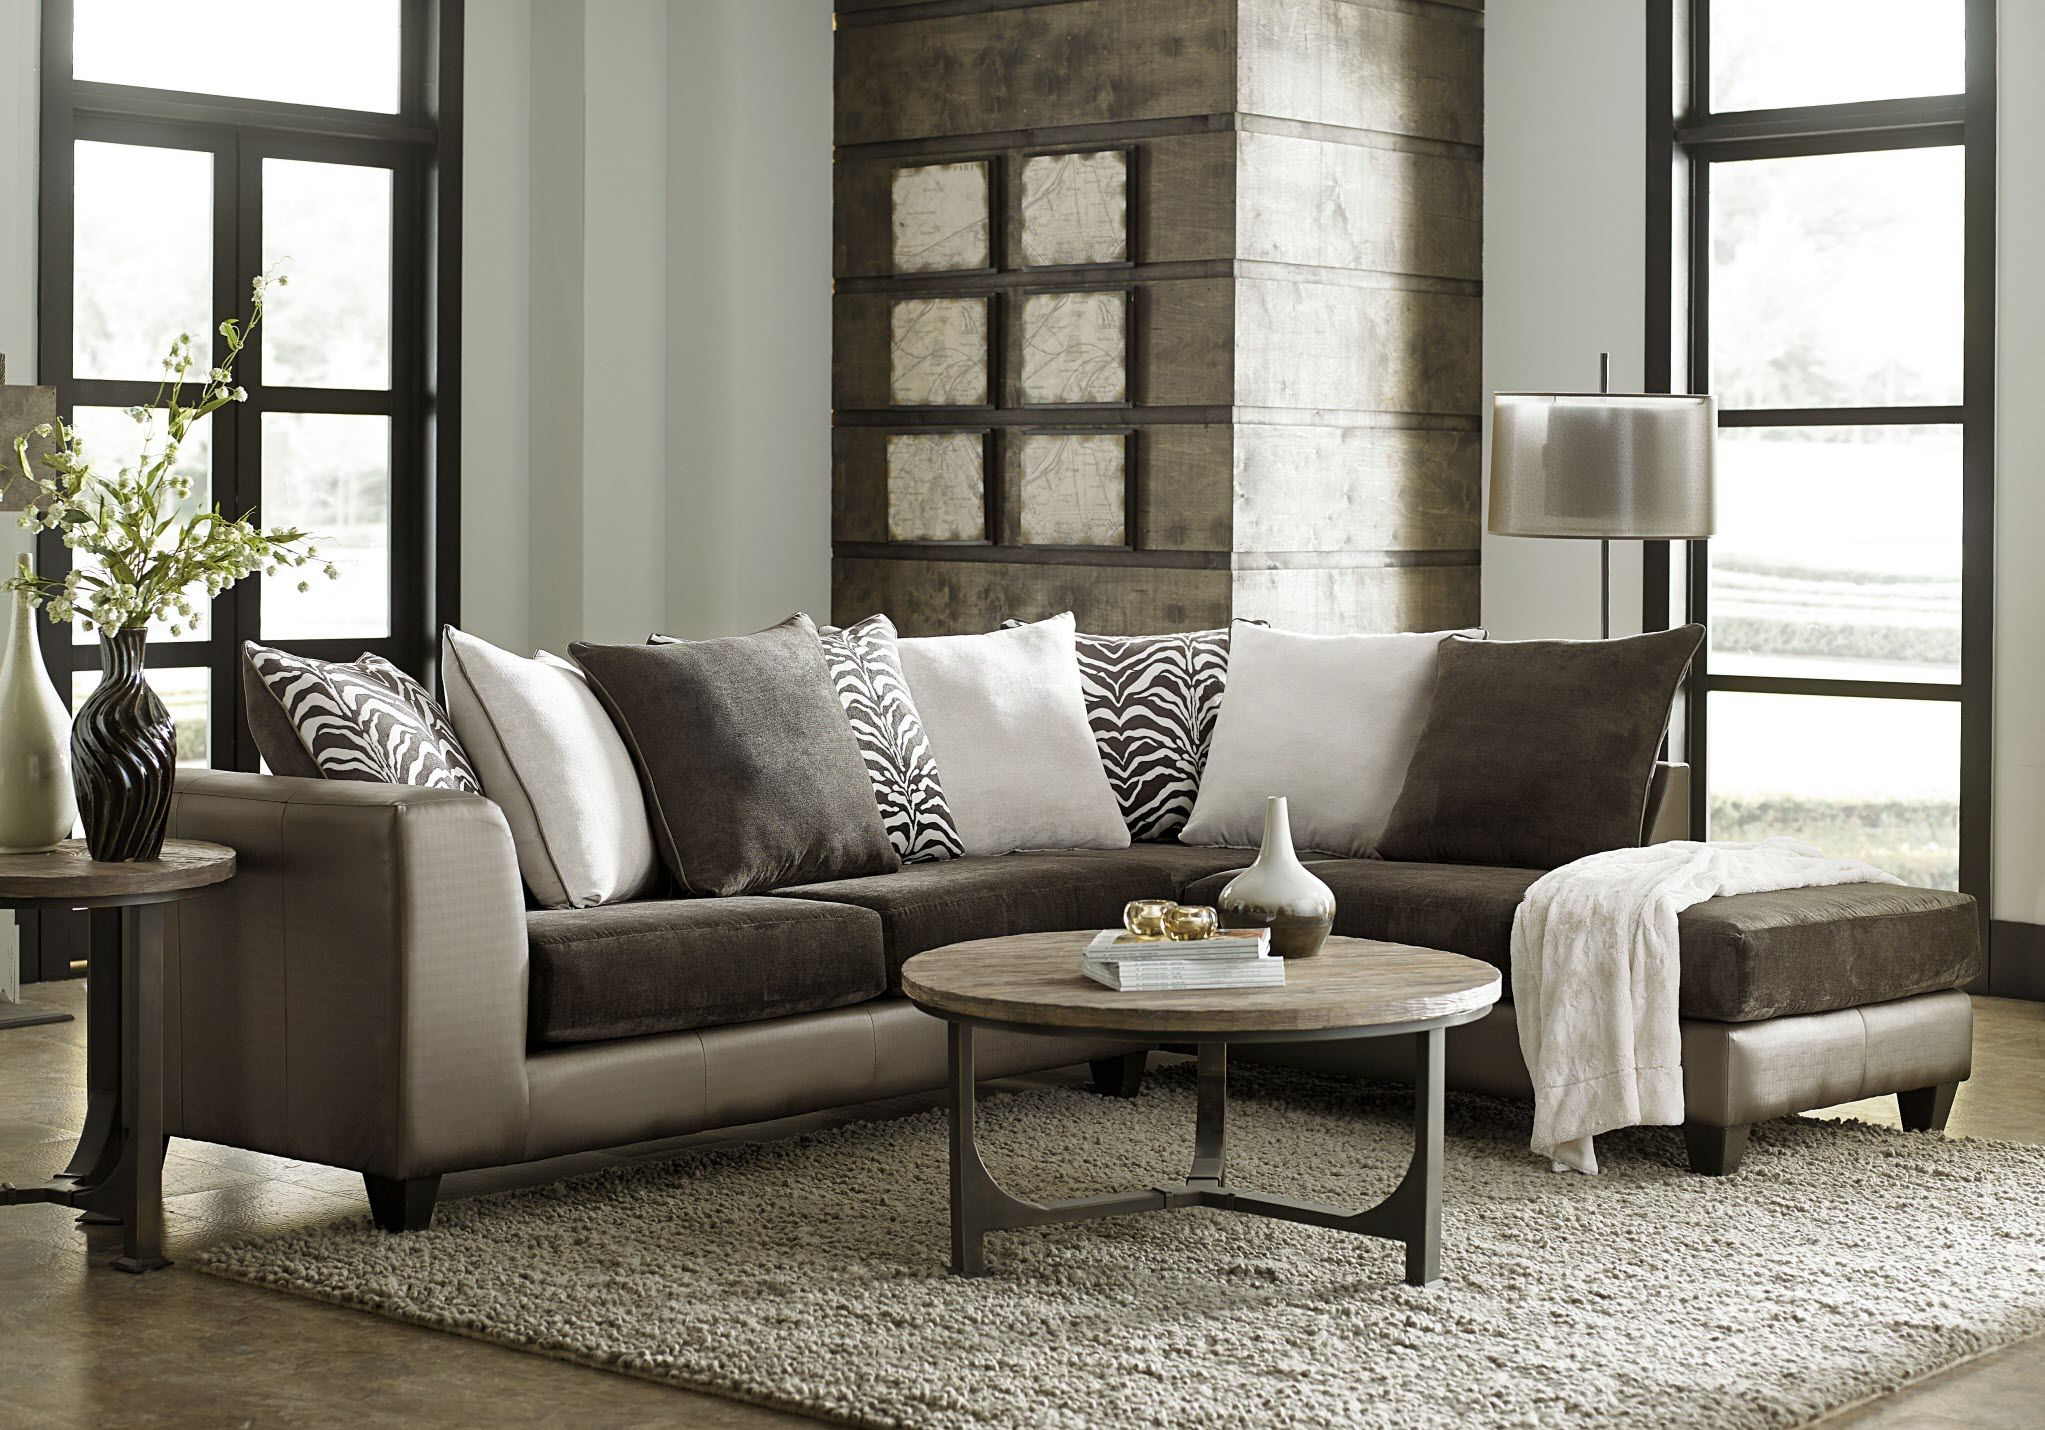 The Shimmer Asia Zanzabar two piece sectional is a stunning